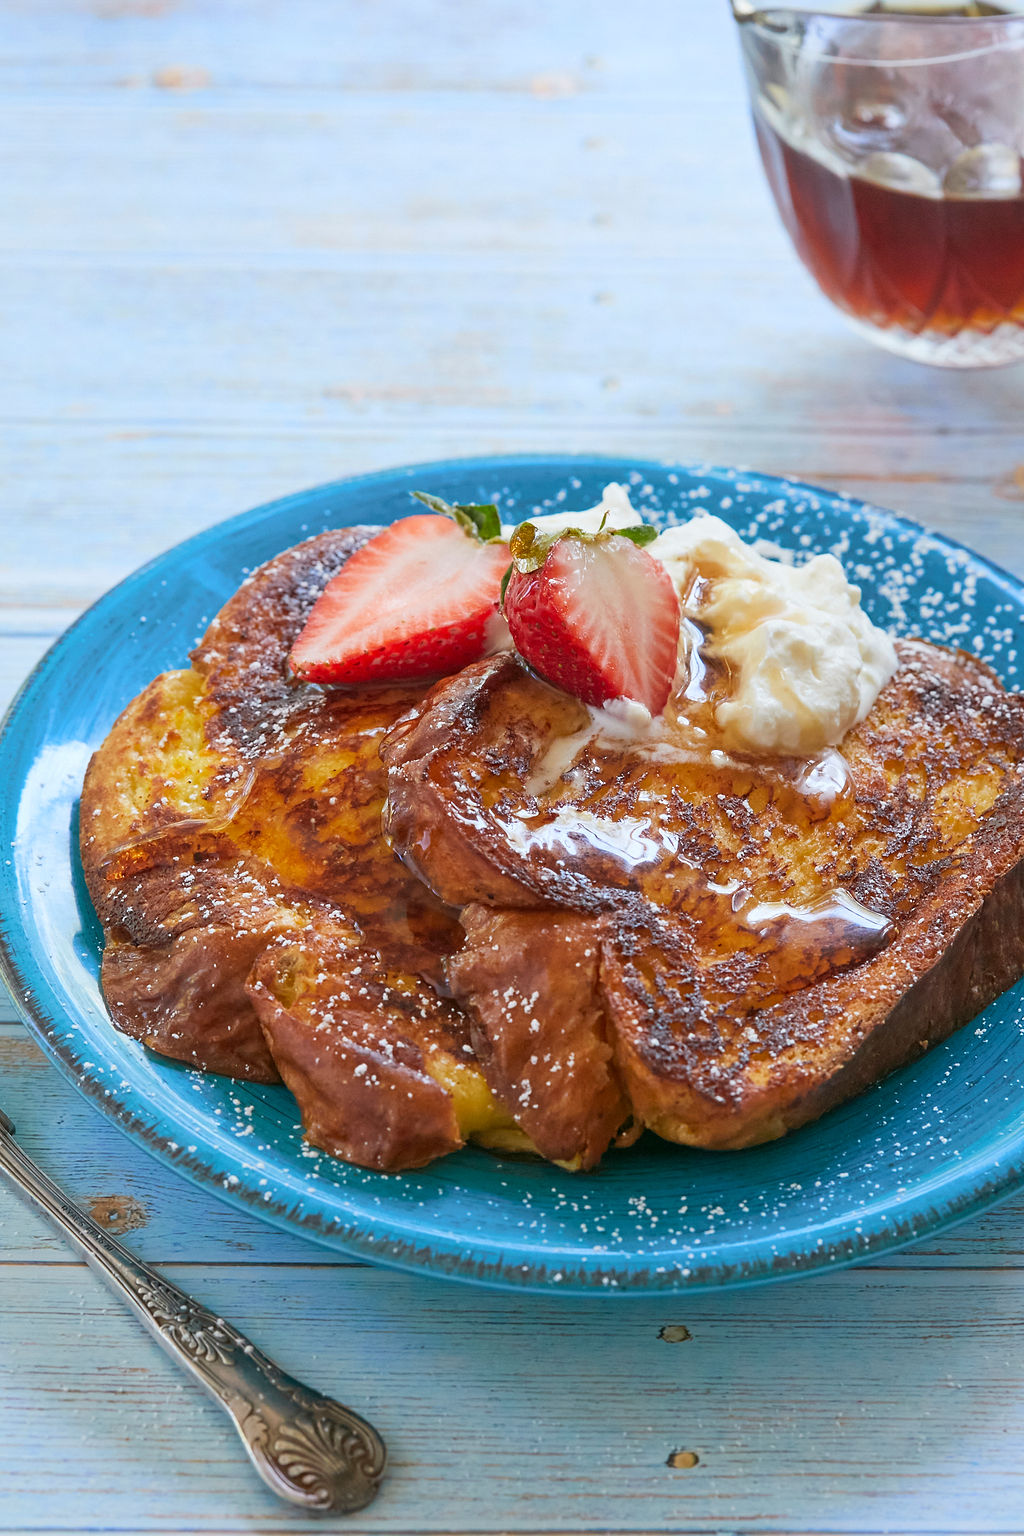 A plate of Brioche French toast topped with cream and strawberries and syrup.